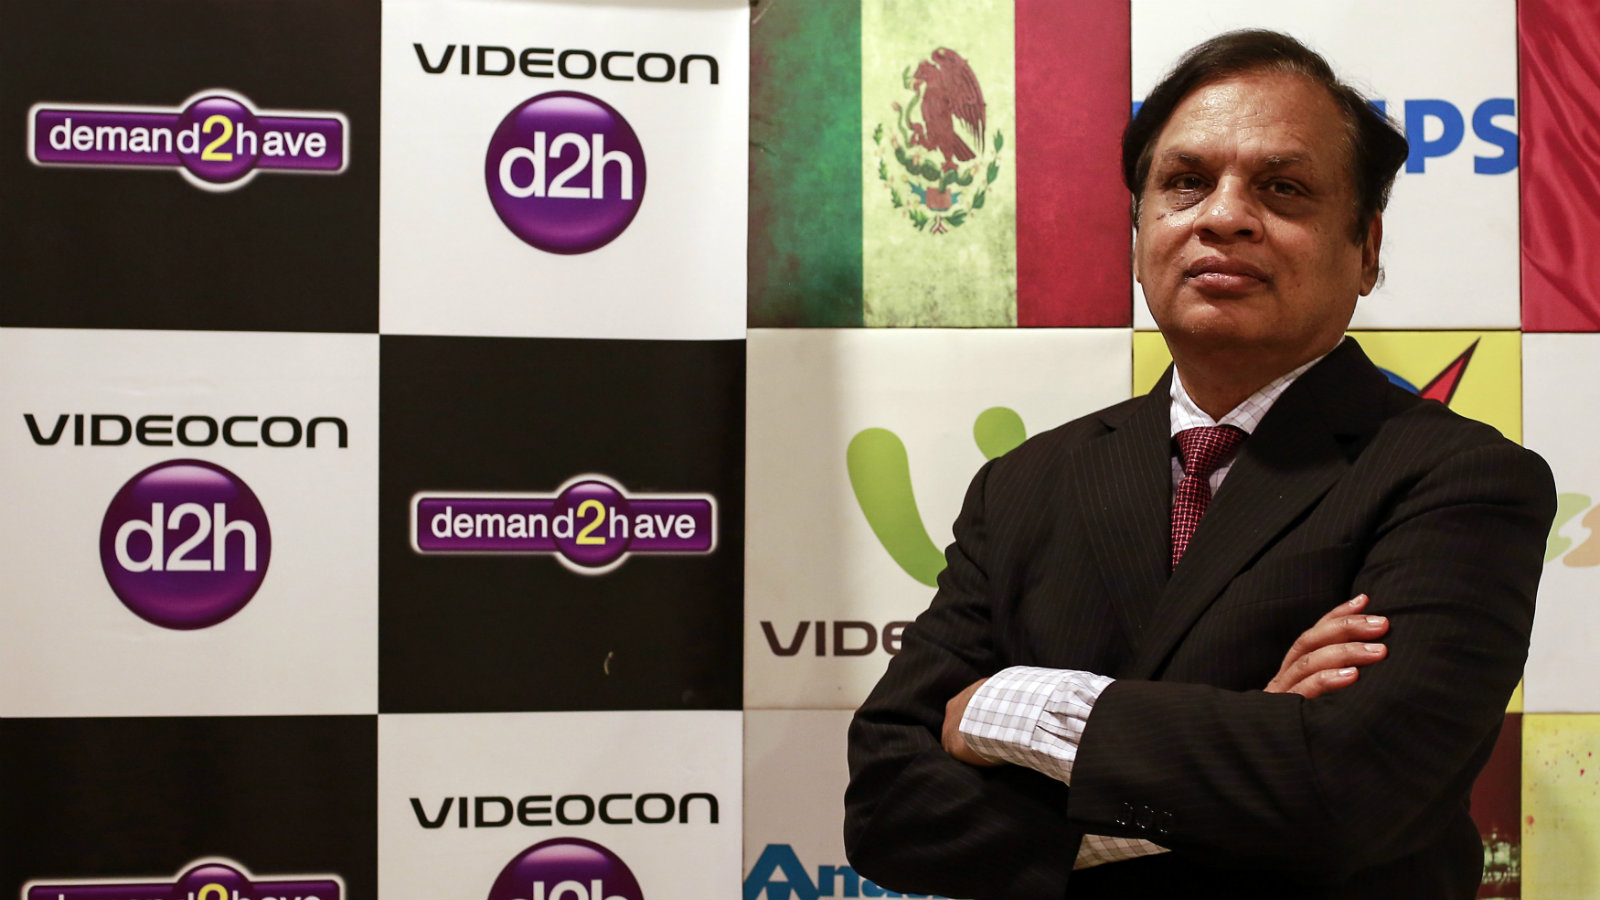 Videocon Group Chairman Venugopal Dhoot poses for a picture at the company corporate office in Mumbai January 7, 2015. Satellite television operator Videocon d2h Ltd has agreed to sell shares worth up to $375 million to U.S. based Silver Eagle Acquisition Corp EAGLU.PK and the proceeds will be used to expand its services.